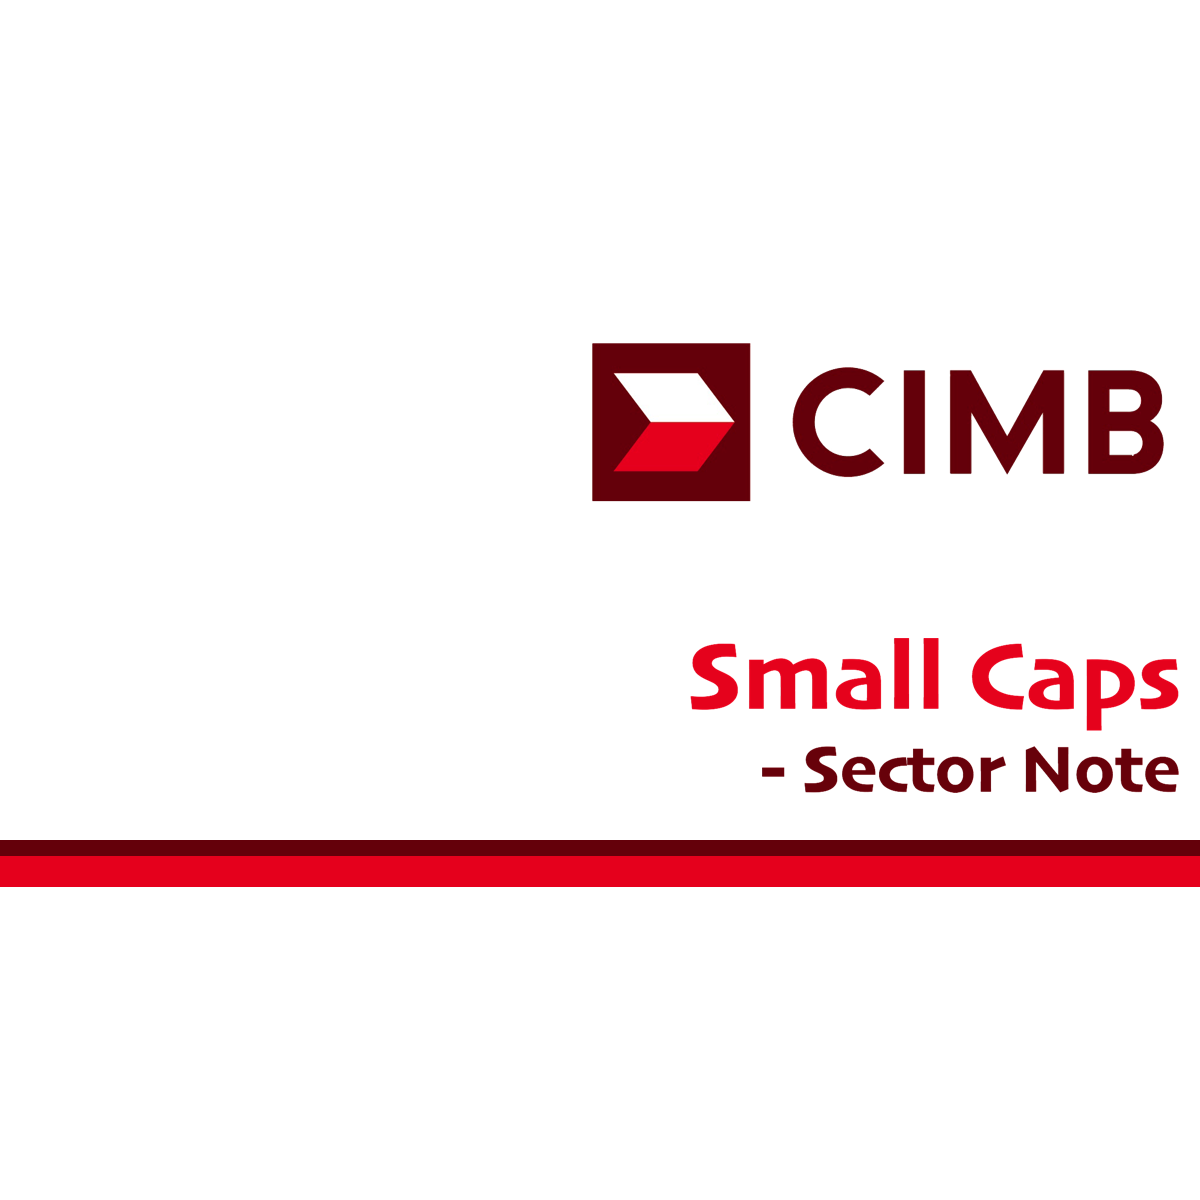 Small caps - CIMB Research 2017-03-07: 4Q16 Earnings mostly in line